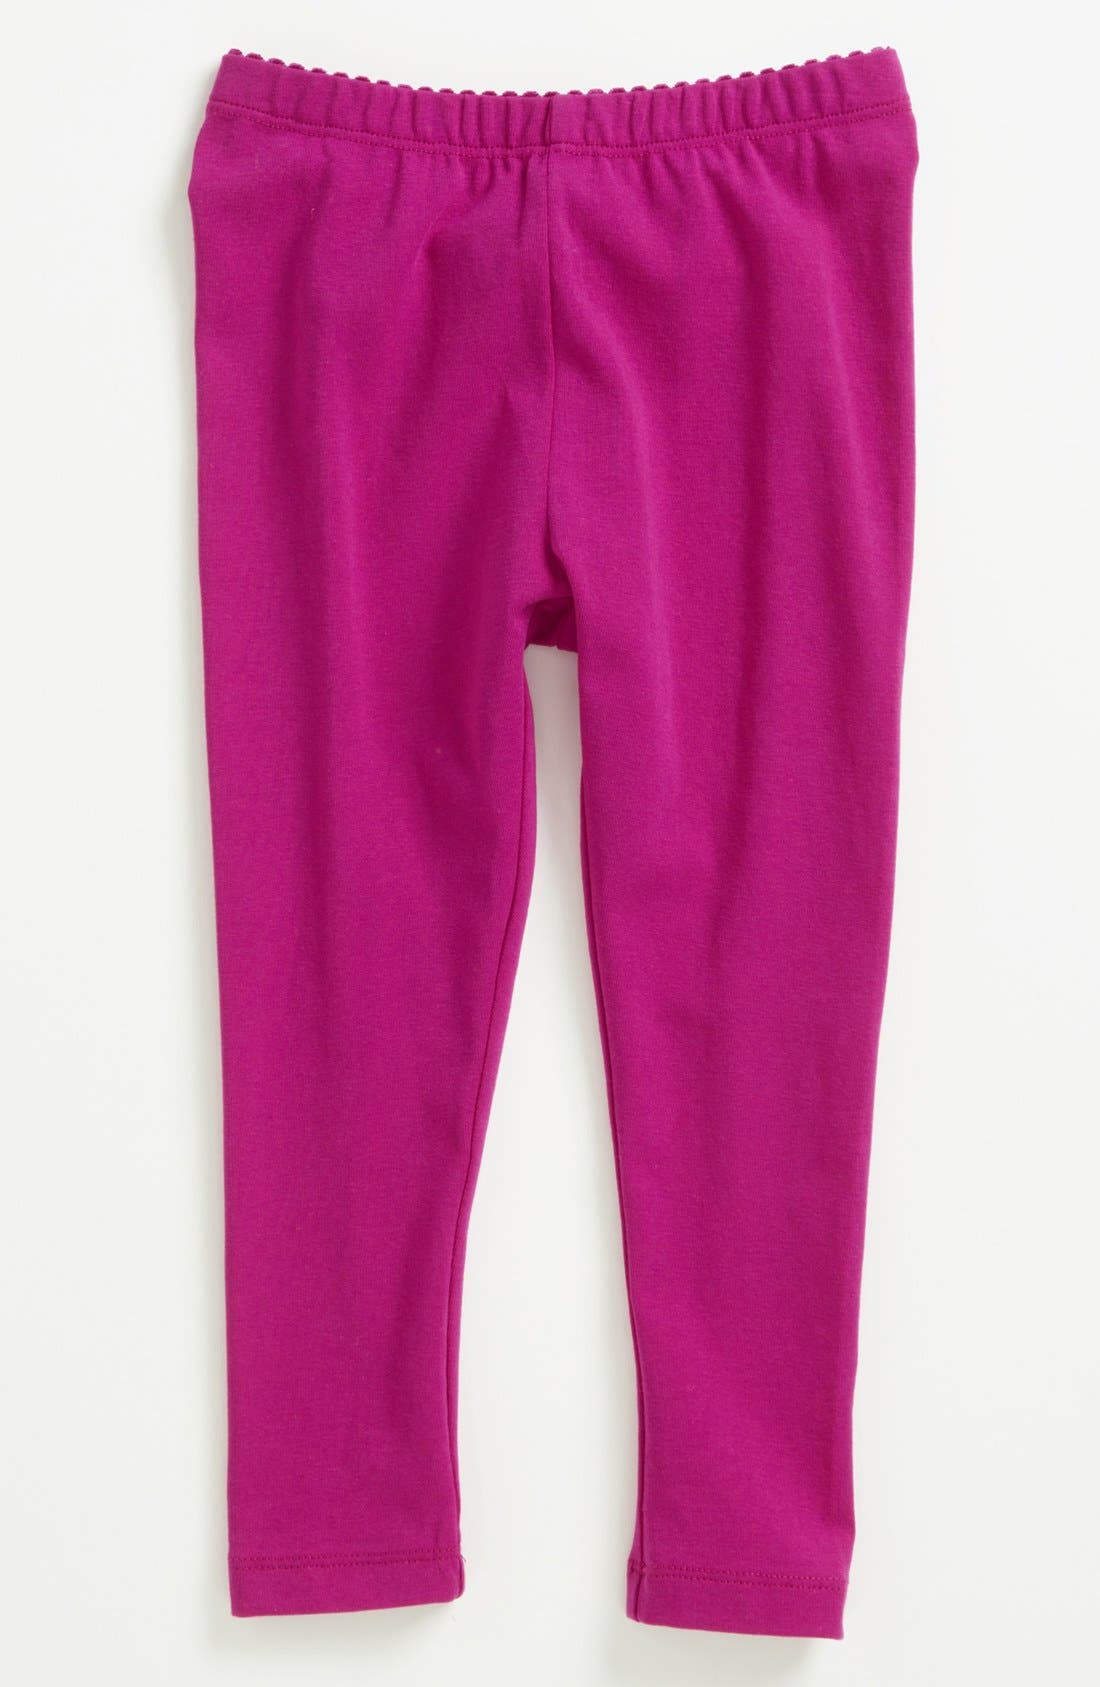 Main Image - Tea Collection Skinny Stretch Leggings (Baby Girls)